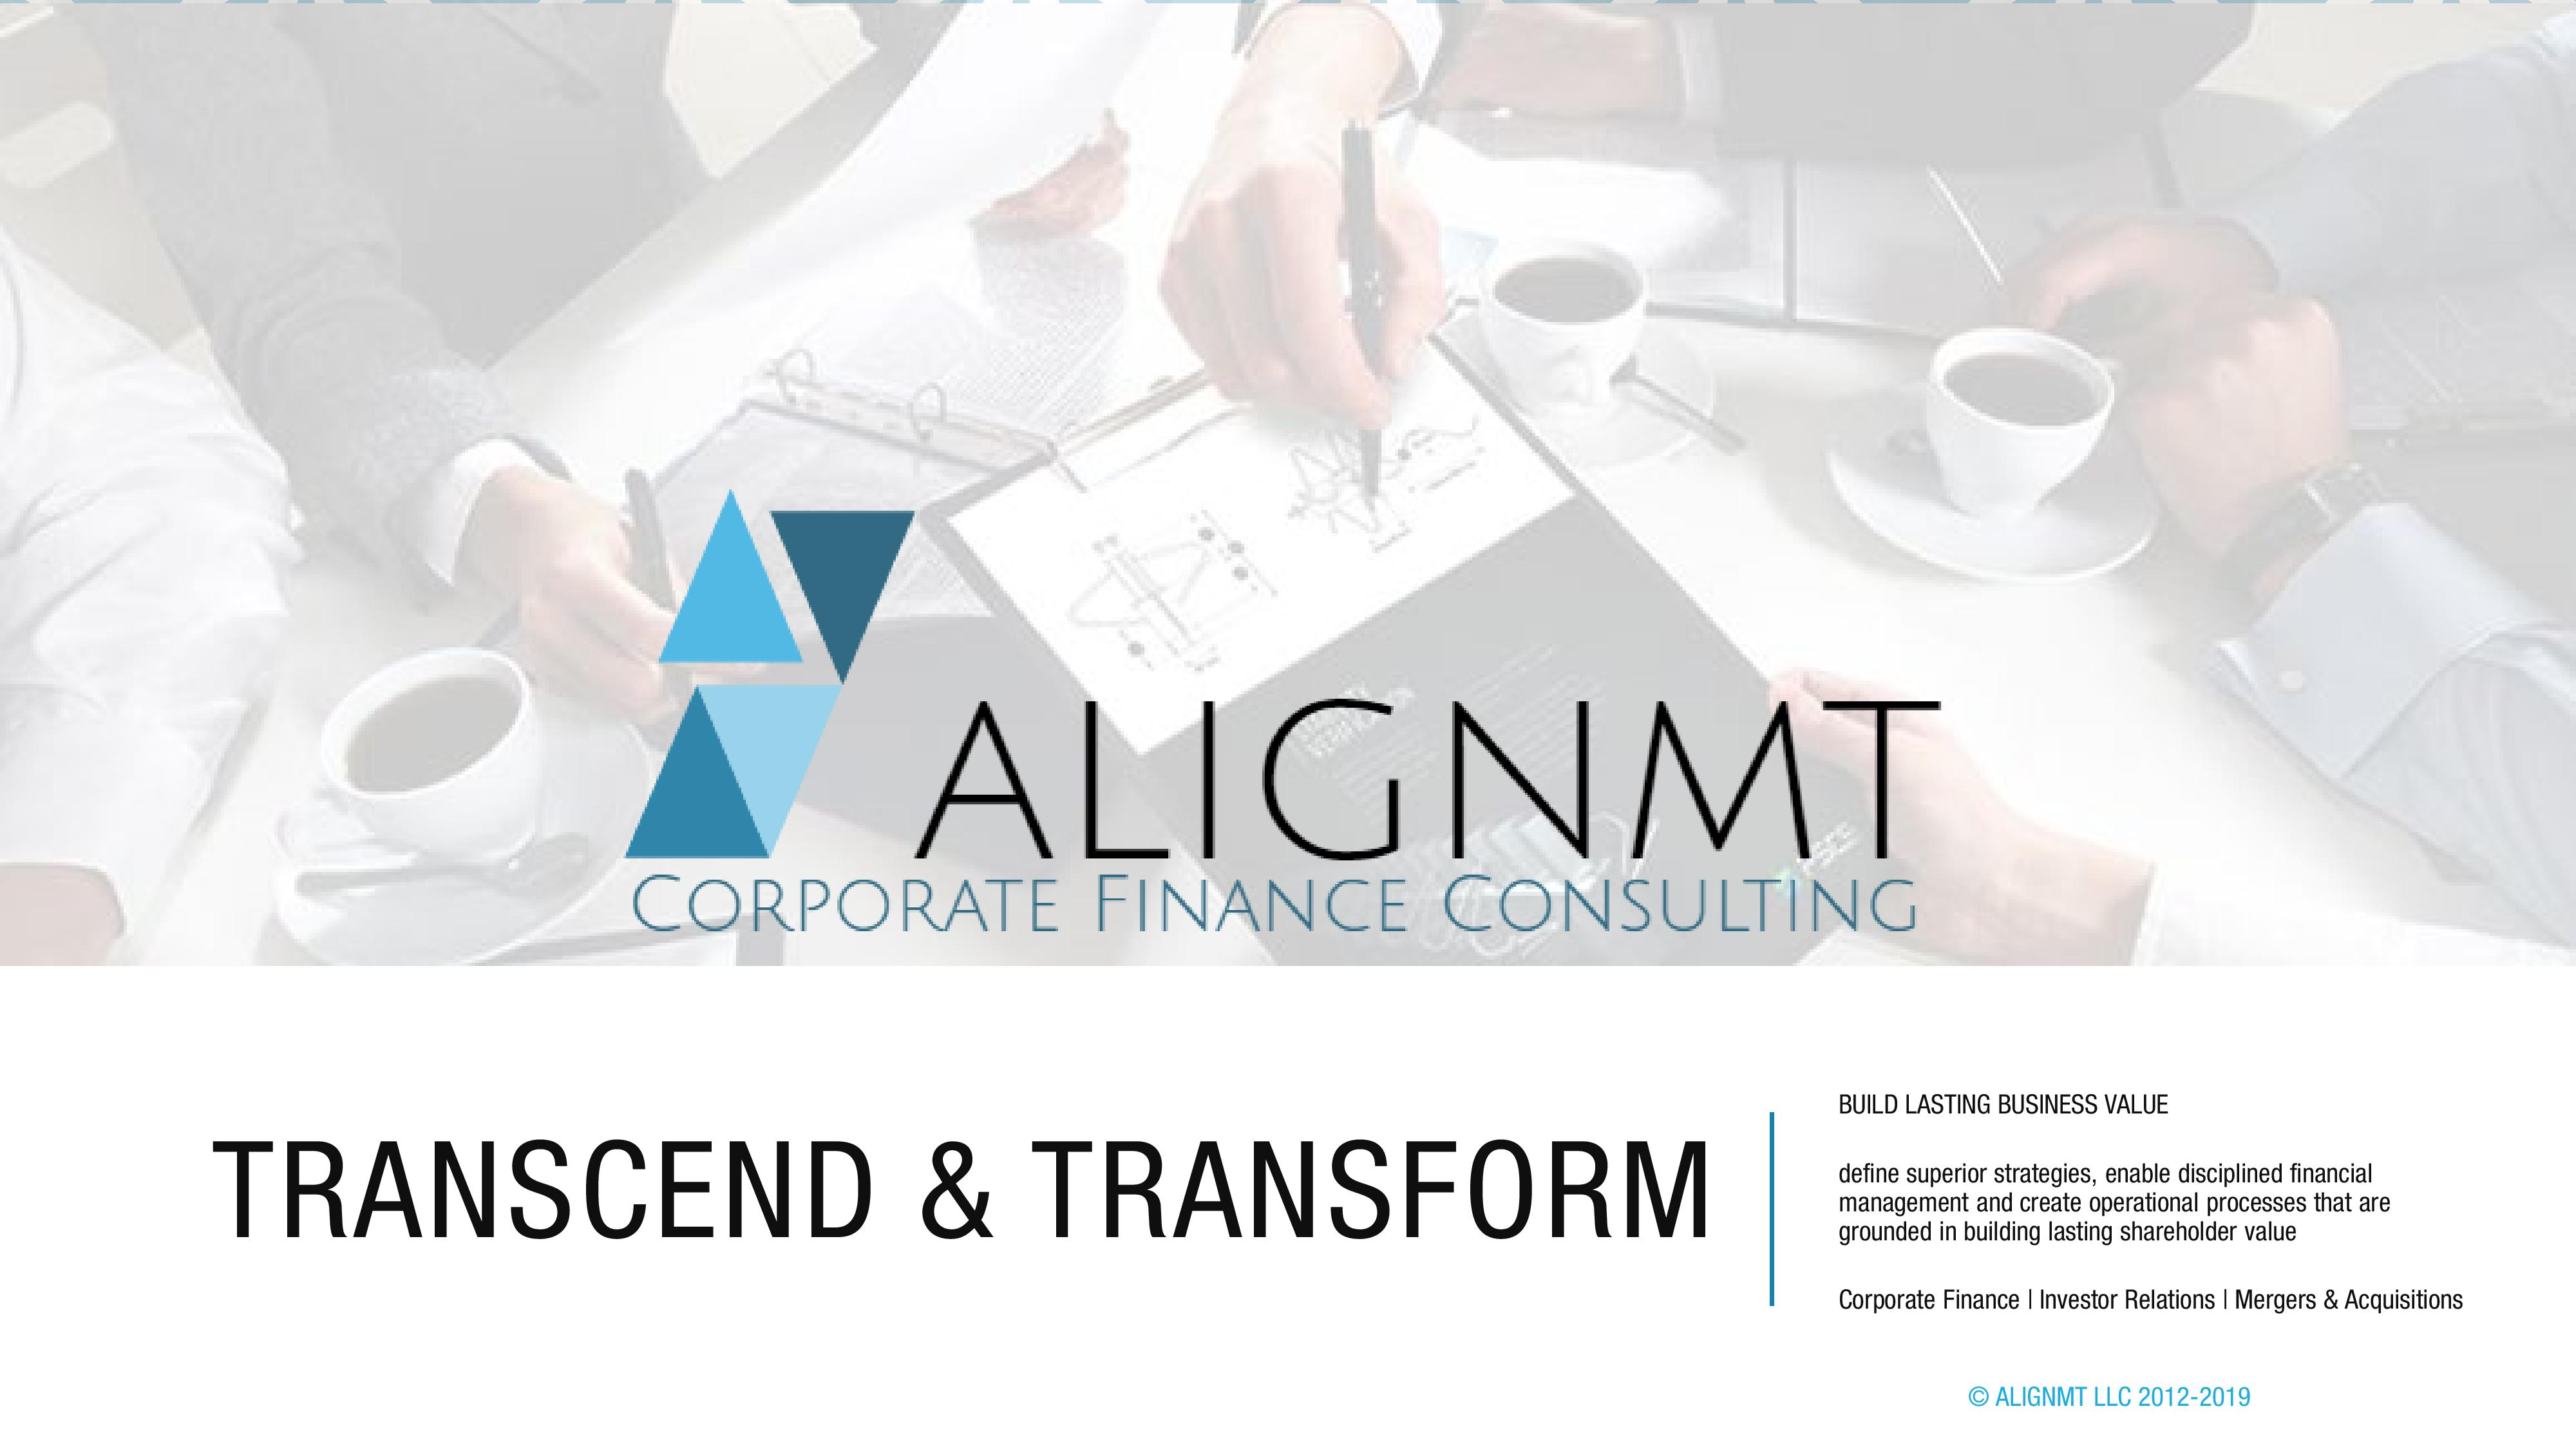 ALIGNMT Transcend & Transform